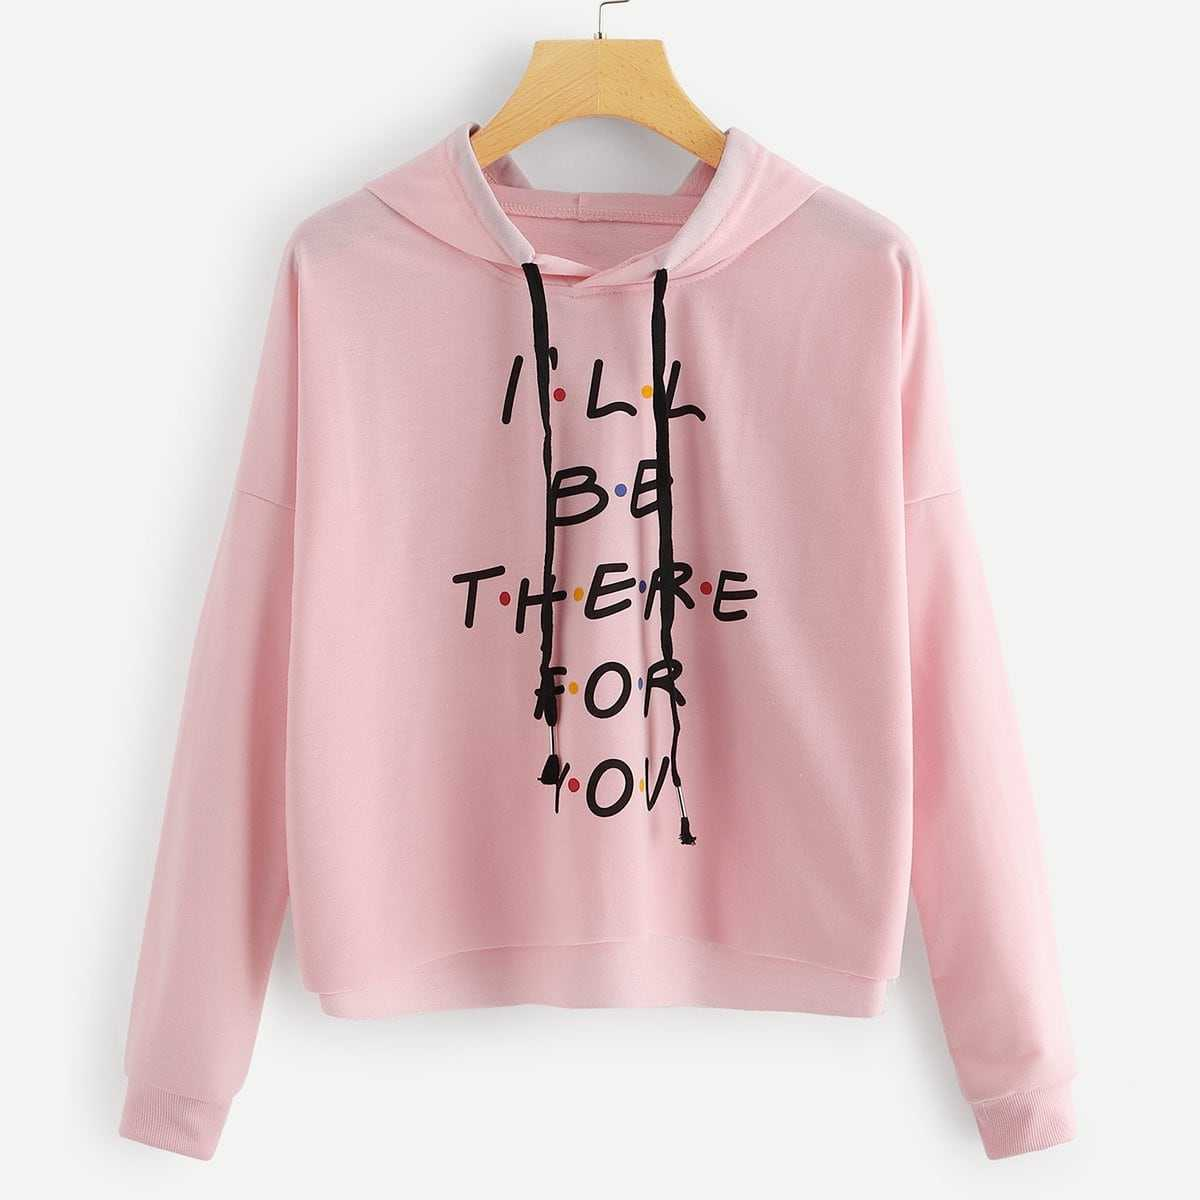 Letter Print Drawstring Hoodie in Pink by ROMWE on GOOFASH